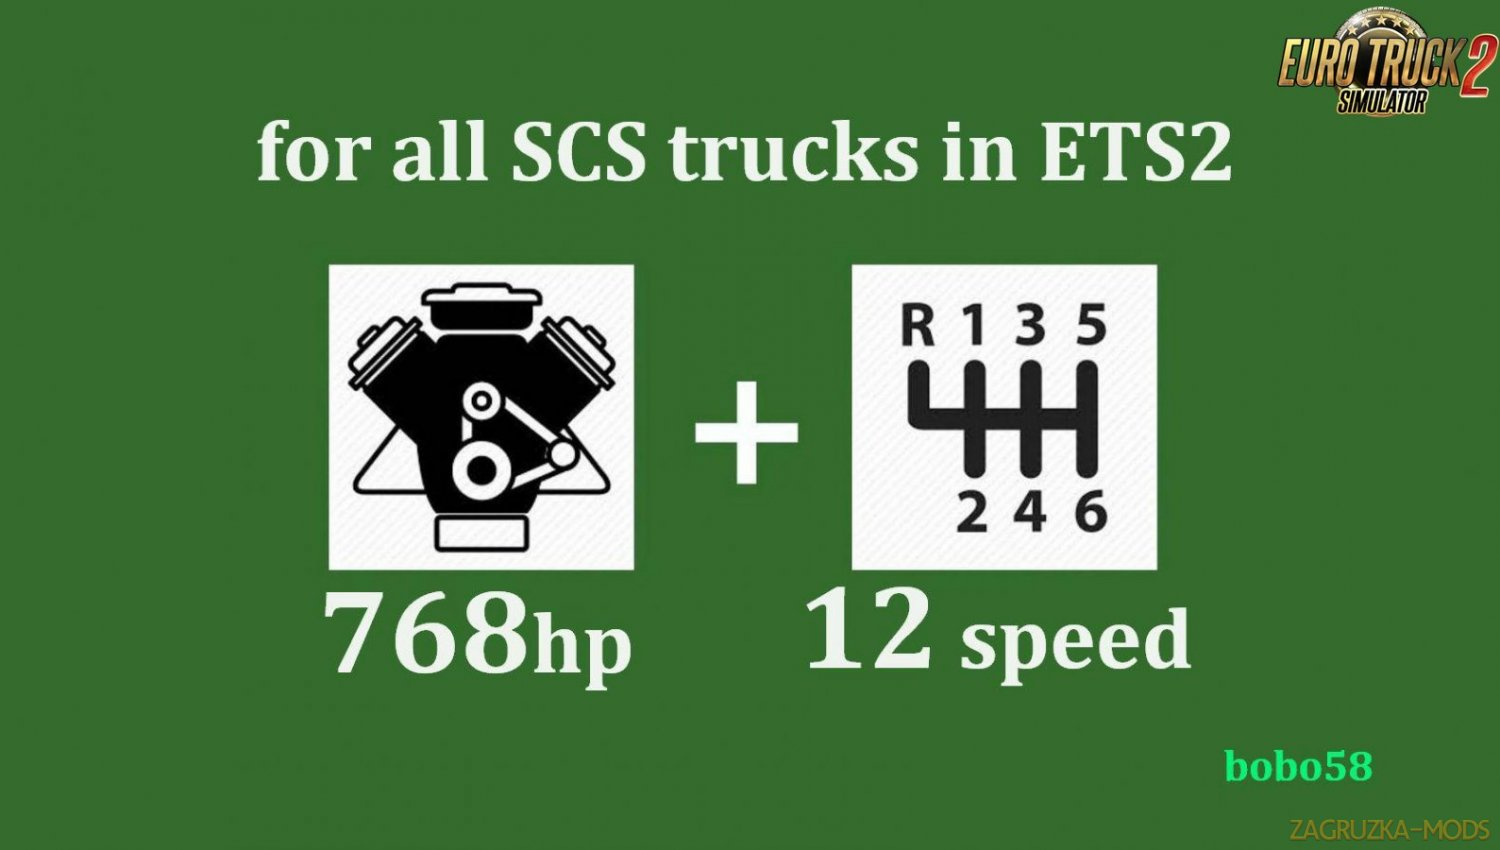 Engine and Gearbox for all SCS trucks